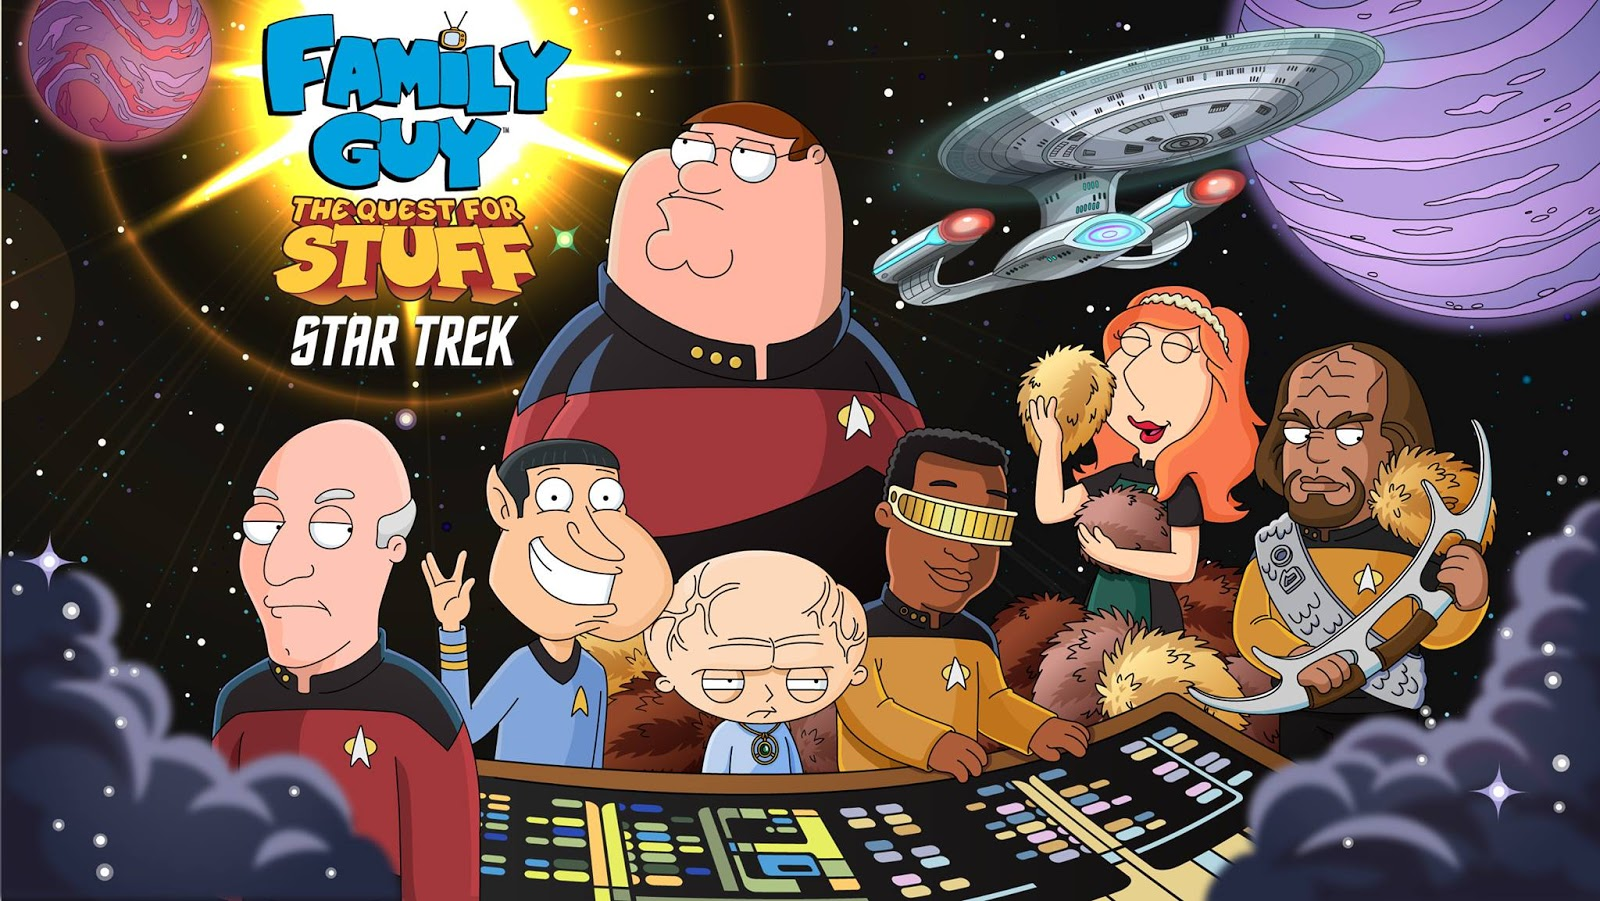 the trek collective family guy quests for stuff on the